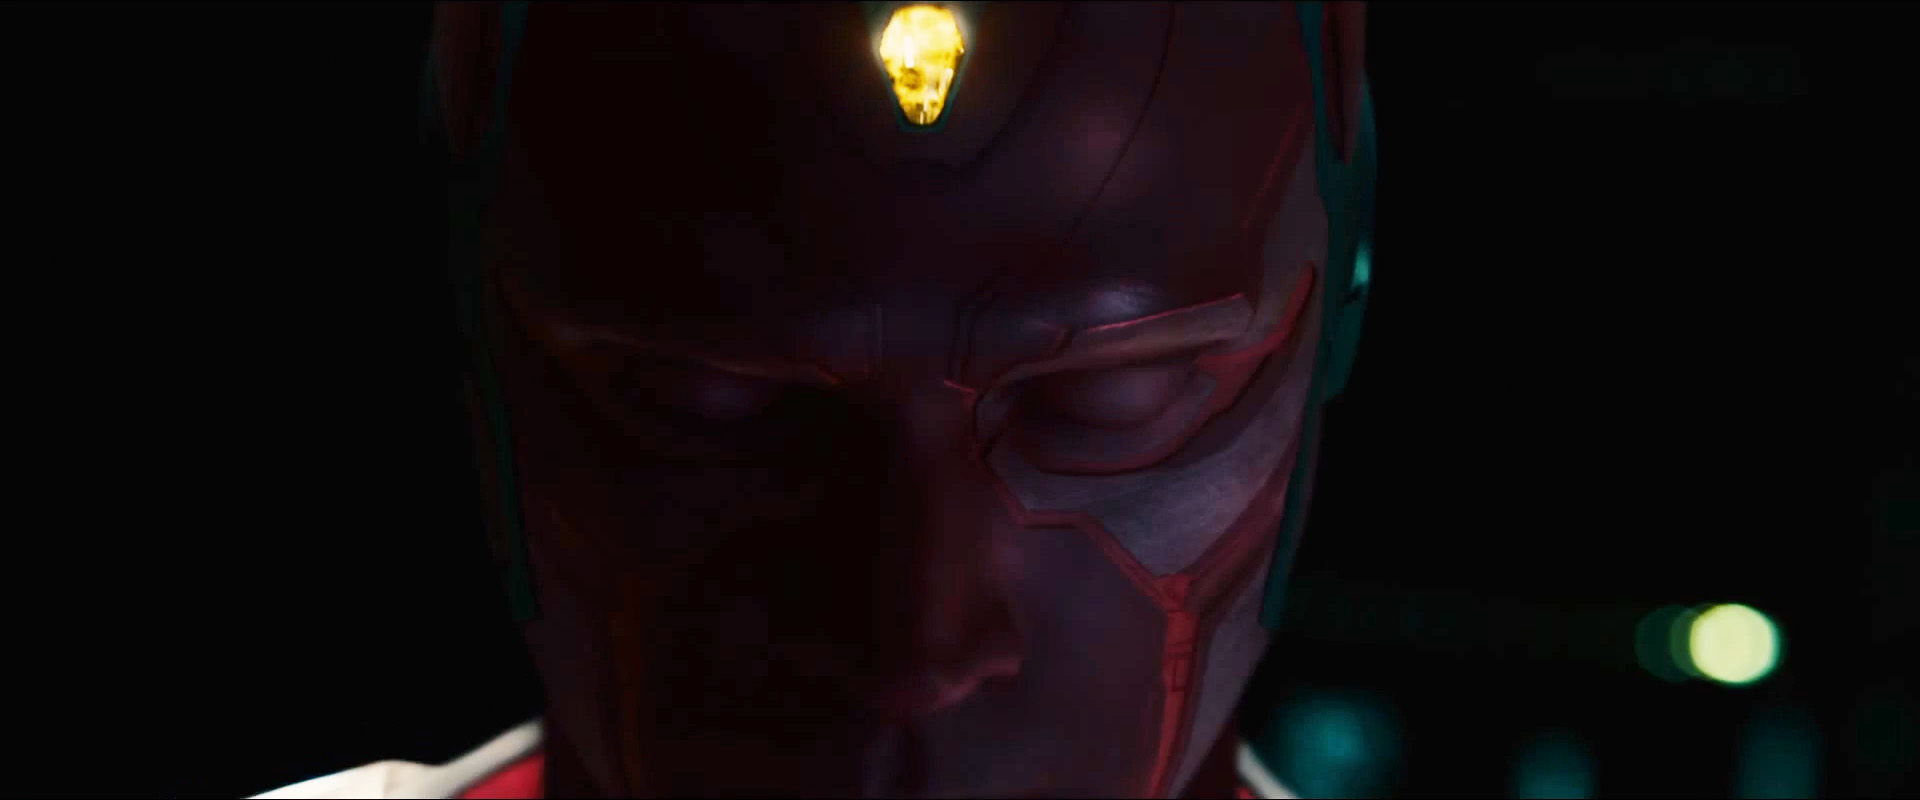 'Avengers 2′ Trailer #3: The Vision Makes His Debut